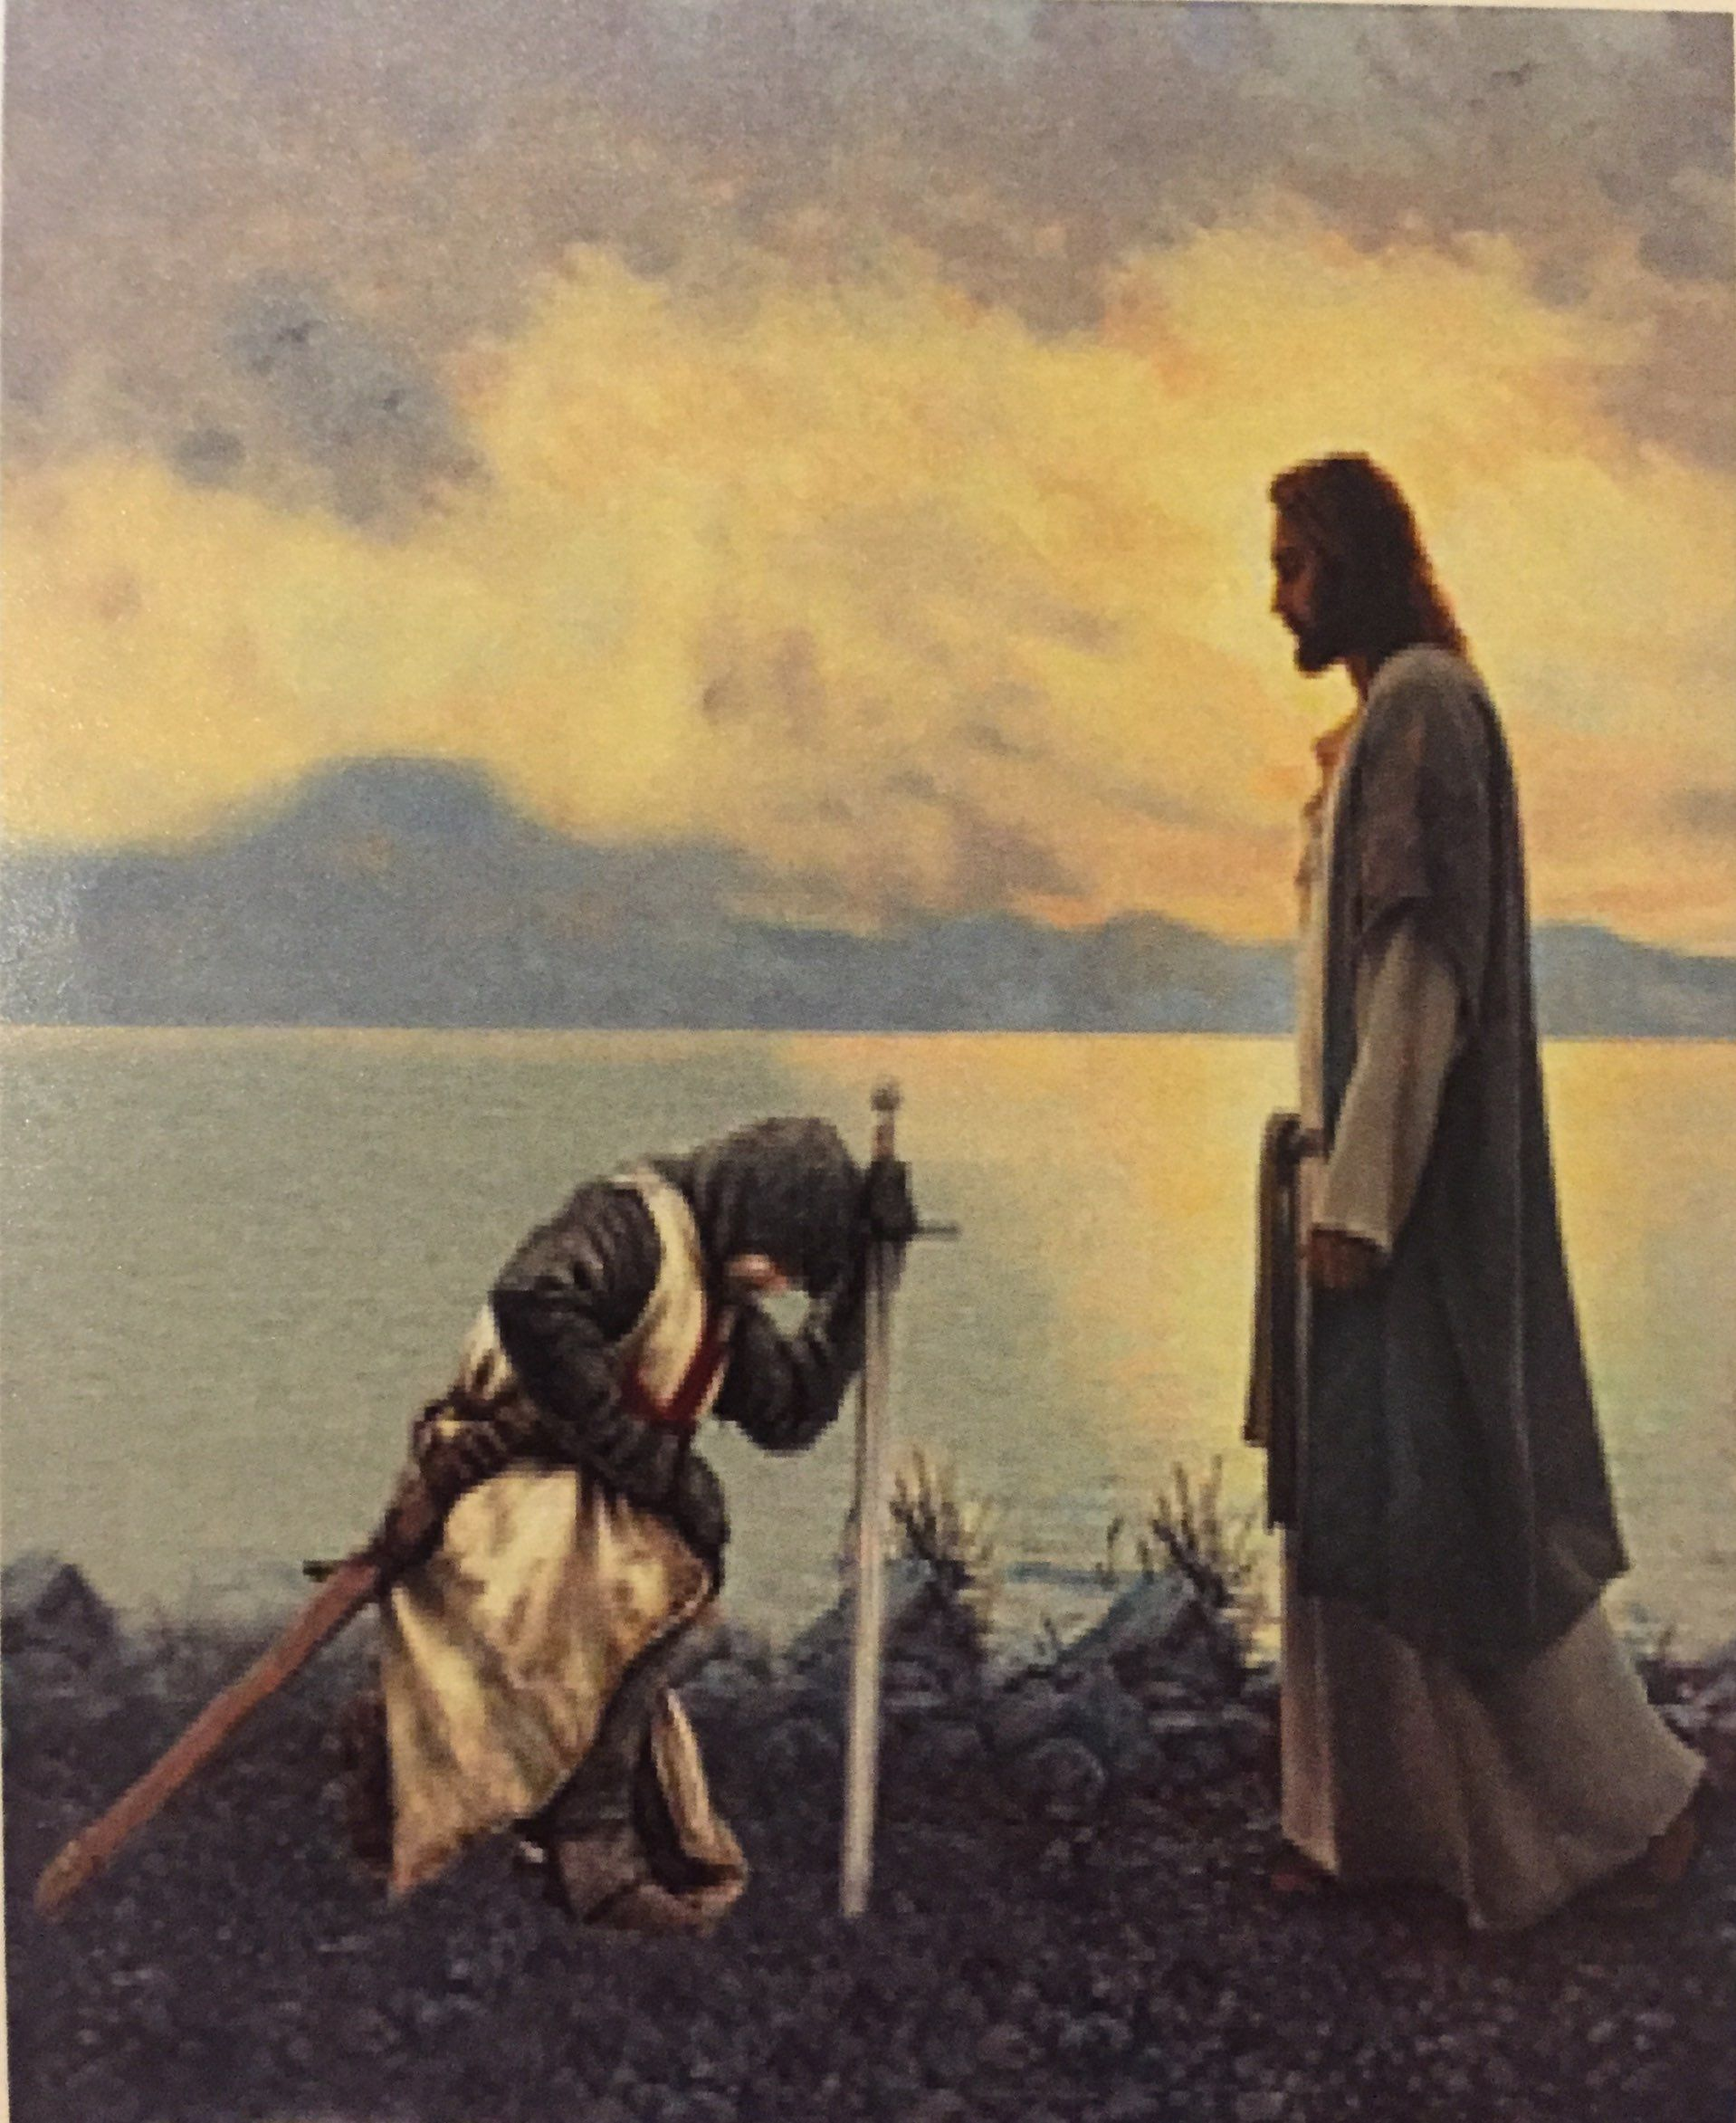 Jesus and Knight Templar